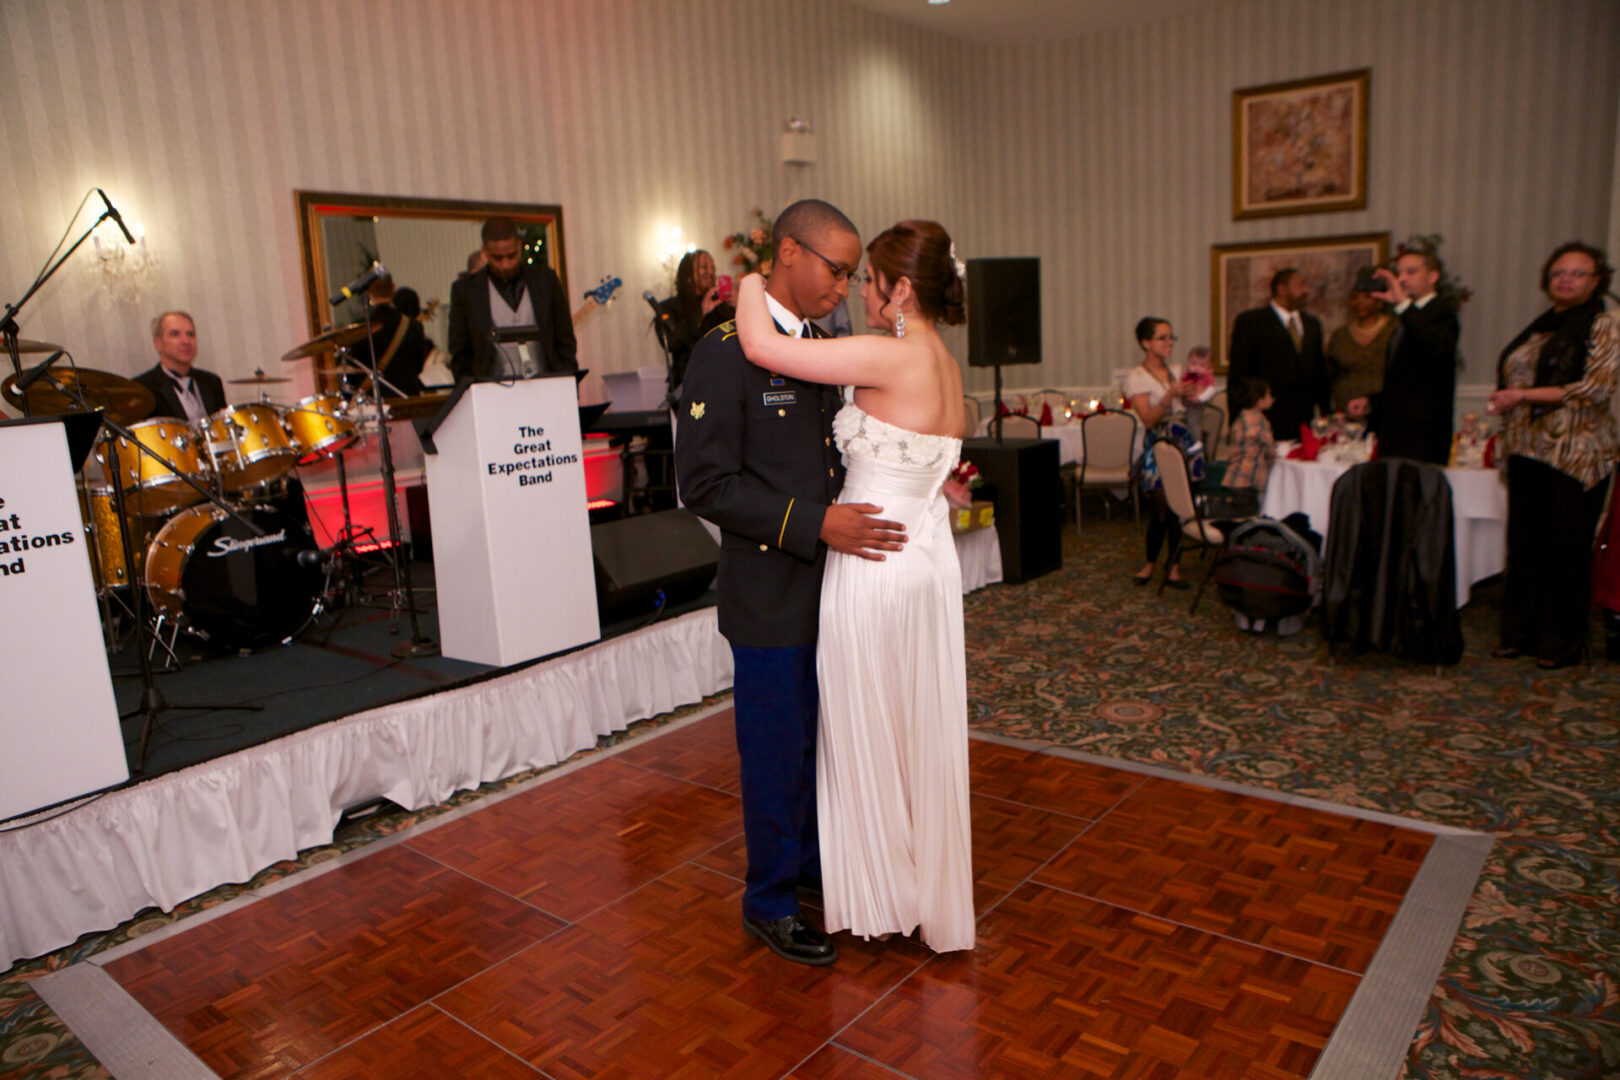 a bride and groom dancing together